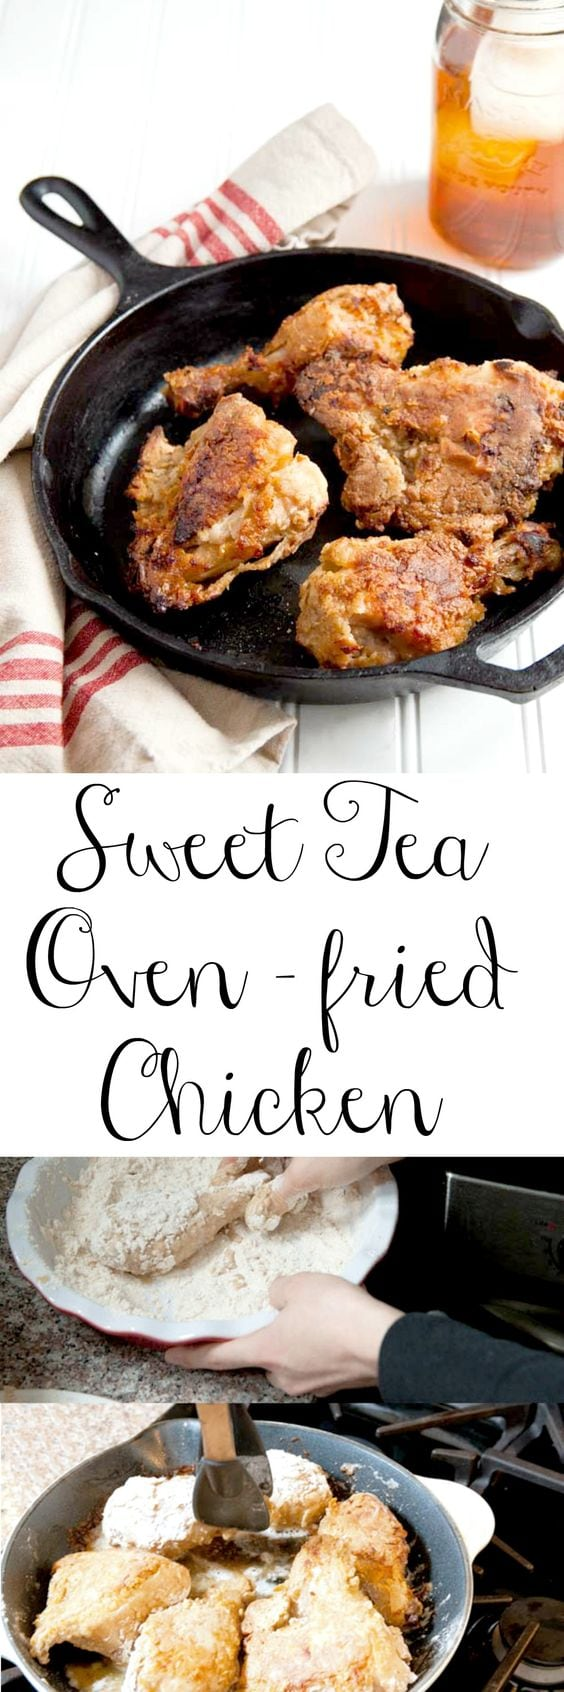 Sweet Tea fried chicken, the best of the best! My fried chicken is oven fried, making it so much easier! #sweettea #sweetteafriedchicken #friedchicken #ovenfried